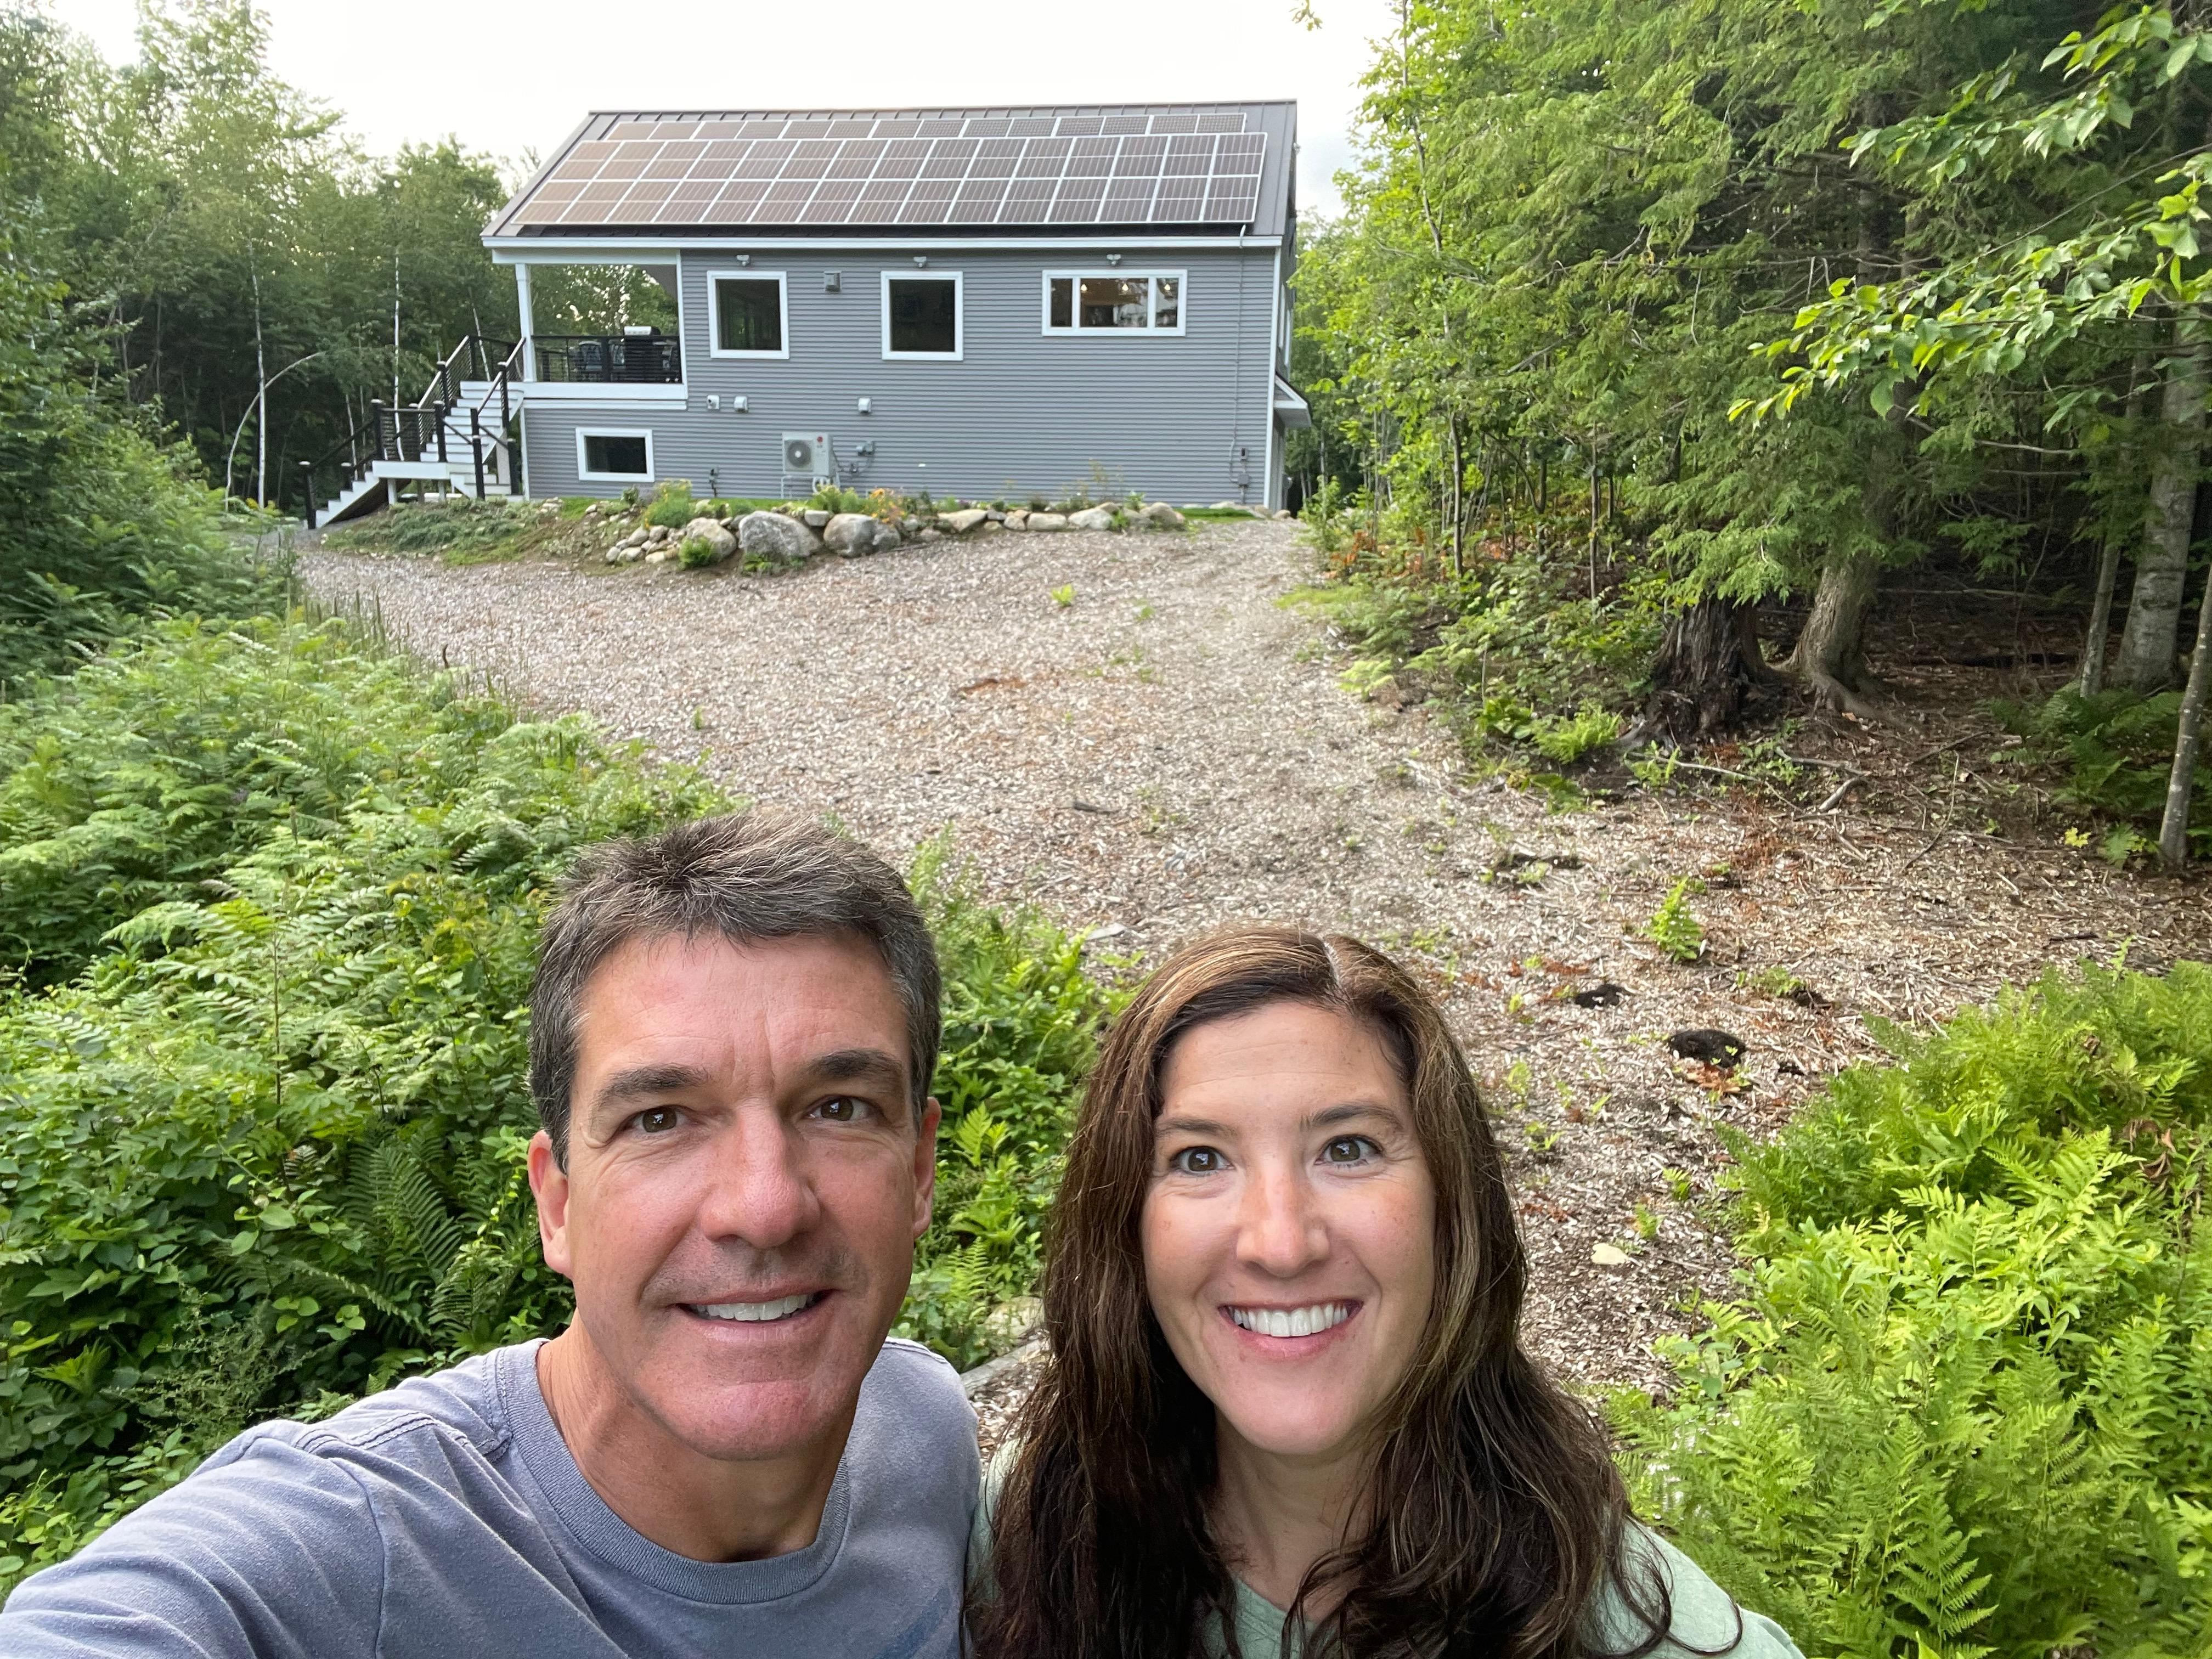 What does it take to build a solar-ready home?